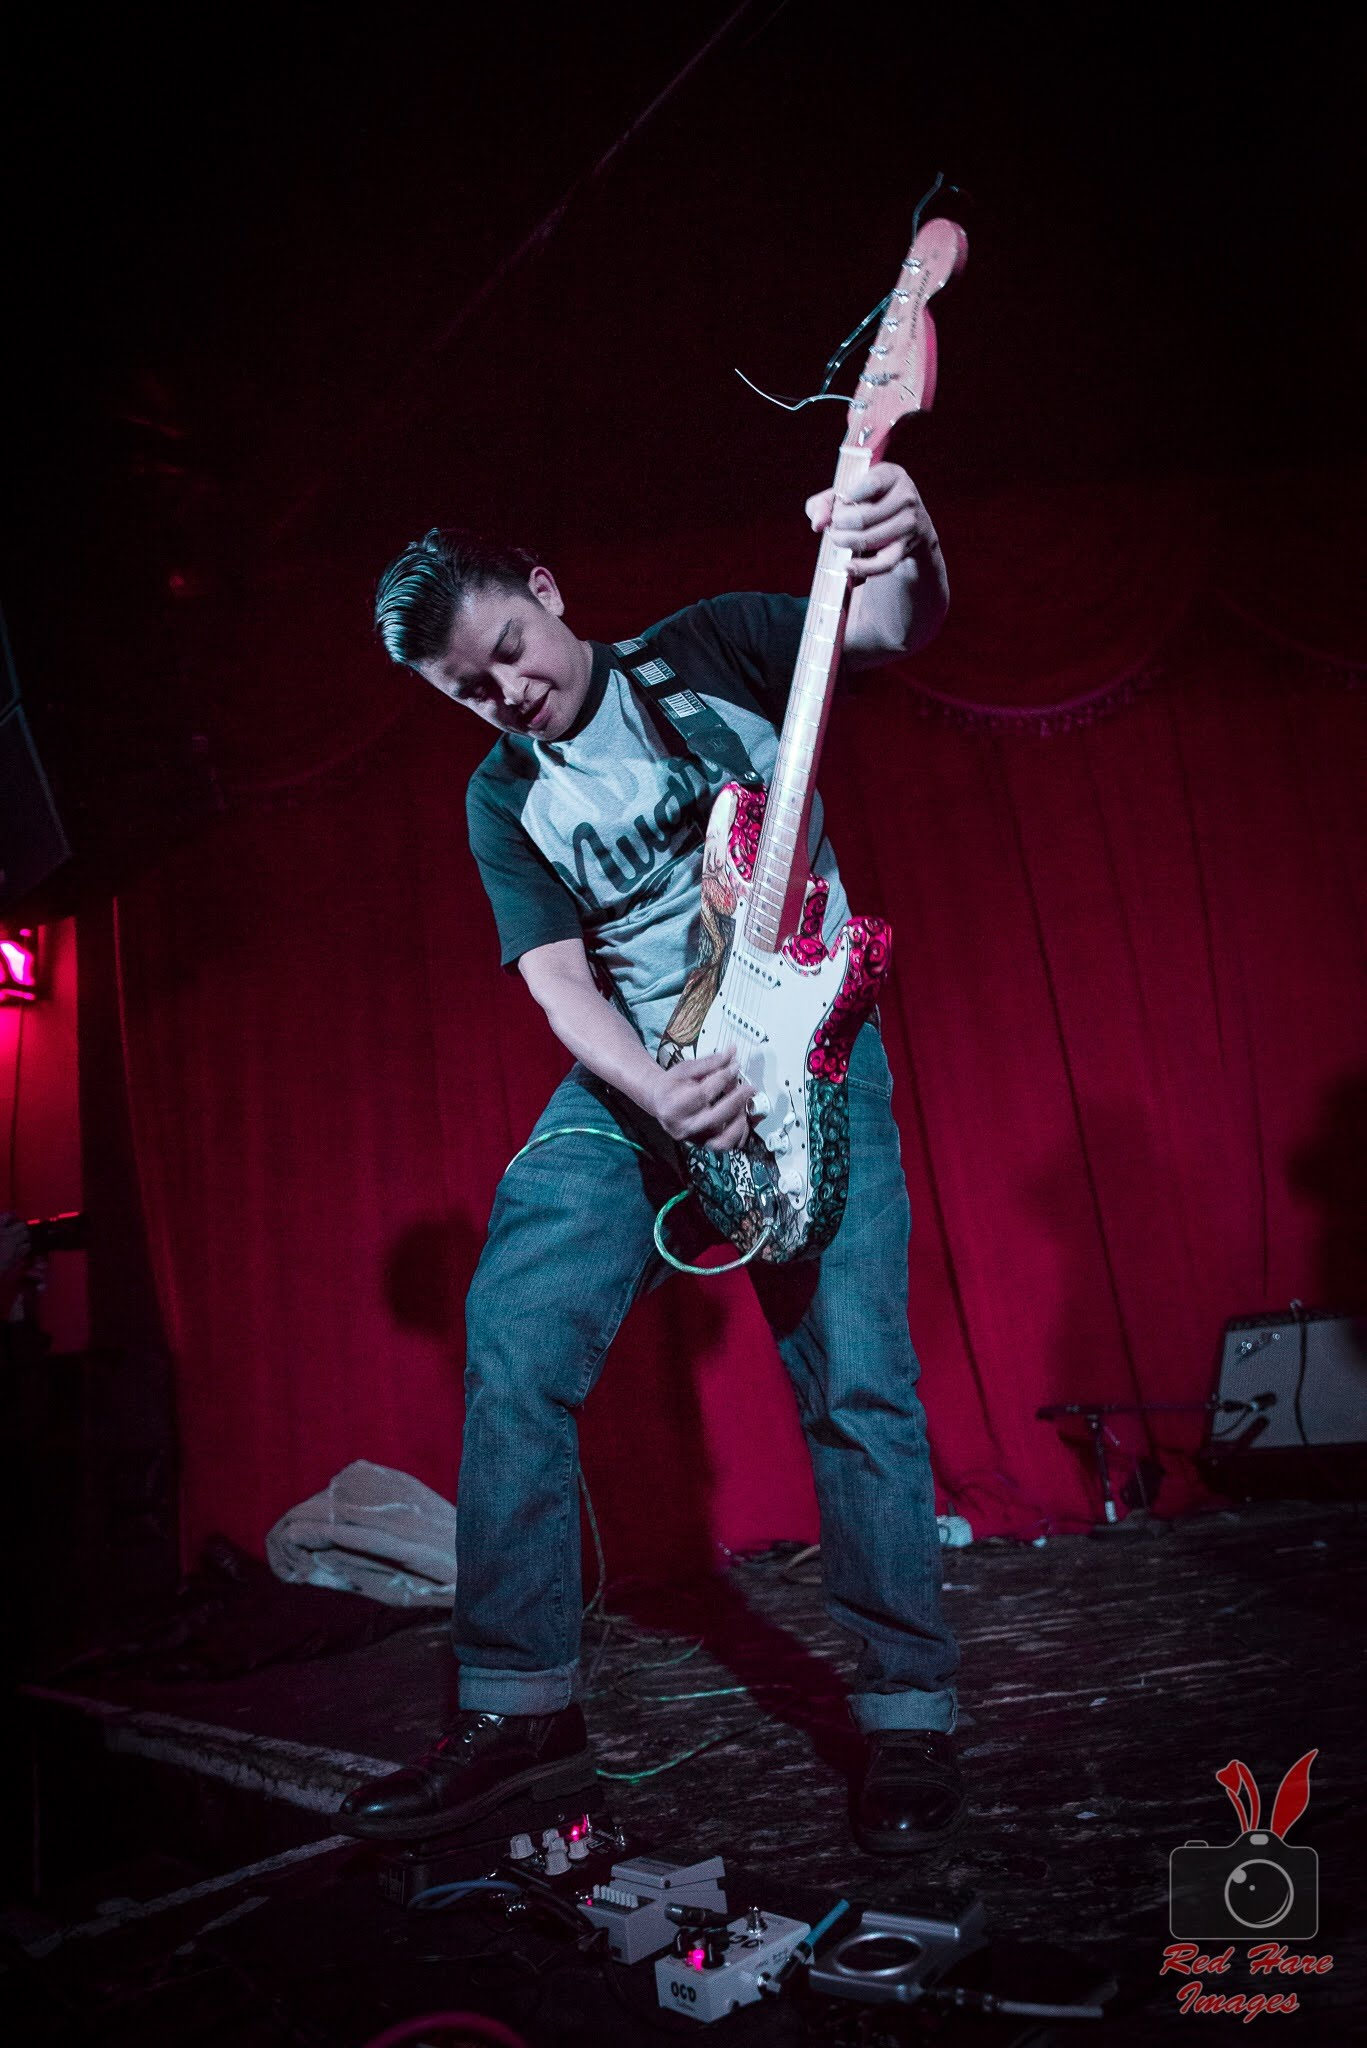 jerry-valle-live-laced-in-blue-long-beach-alexs-bar-guitar-guitarist-rock-red-hare-images